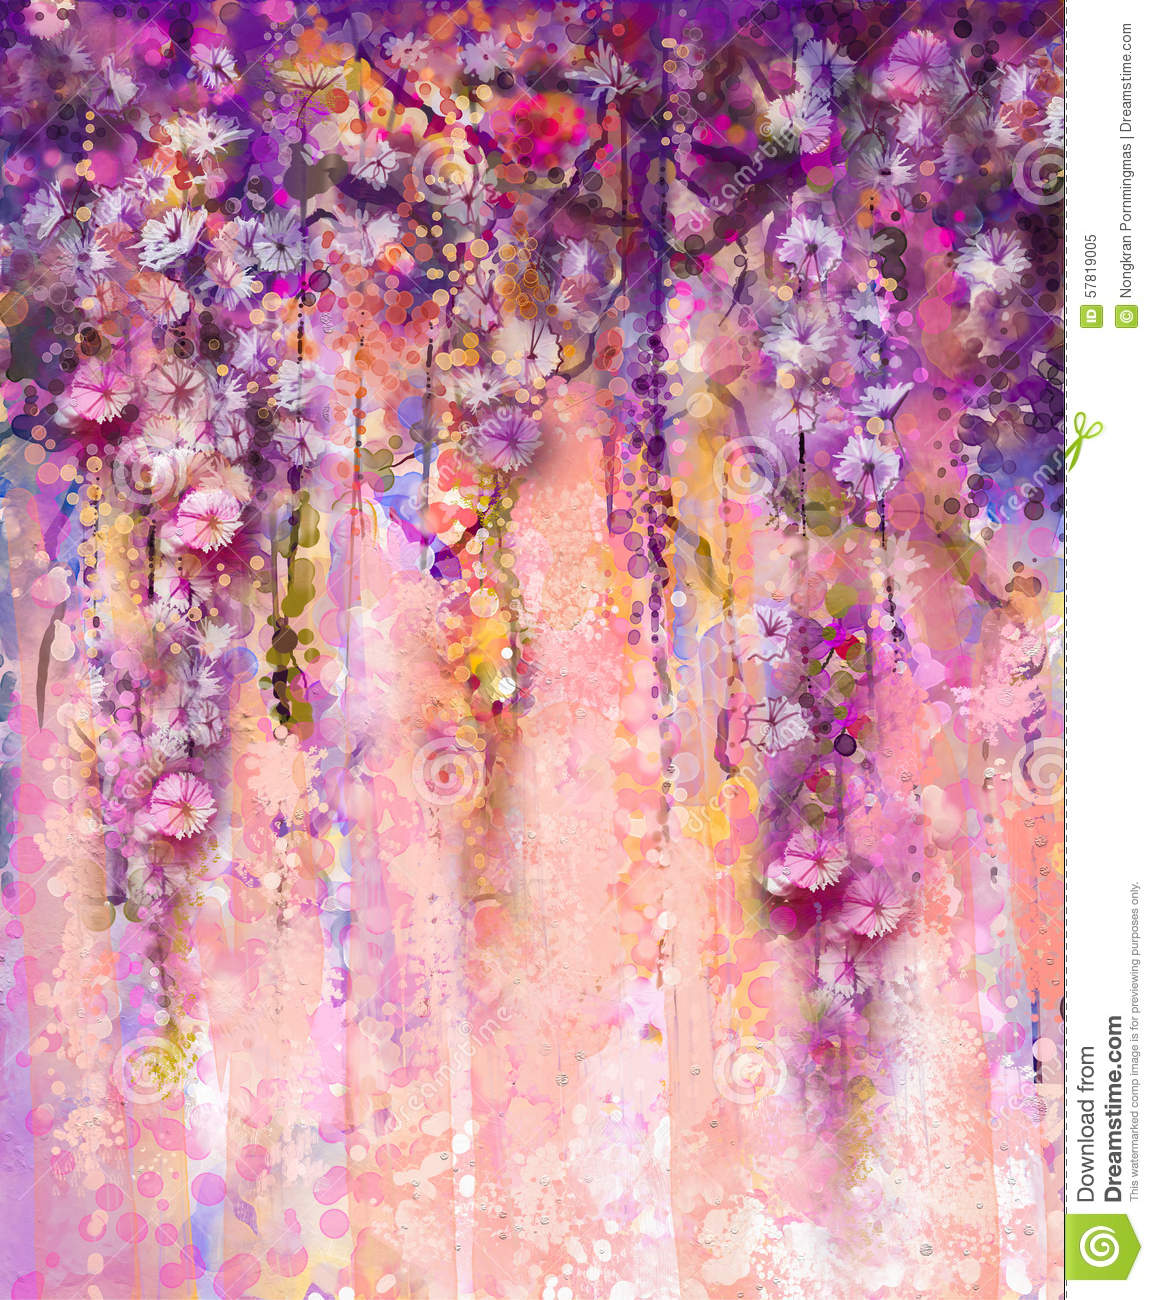 Wisteria Flower Tunnel Abstract Pink And Violet Color Flowers Watercolor